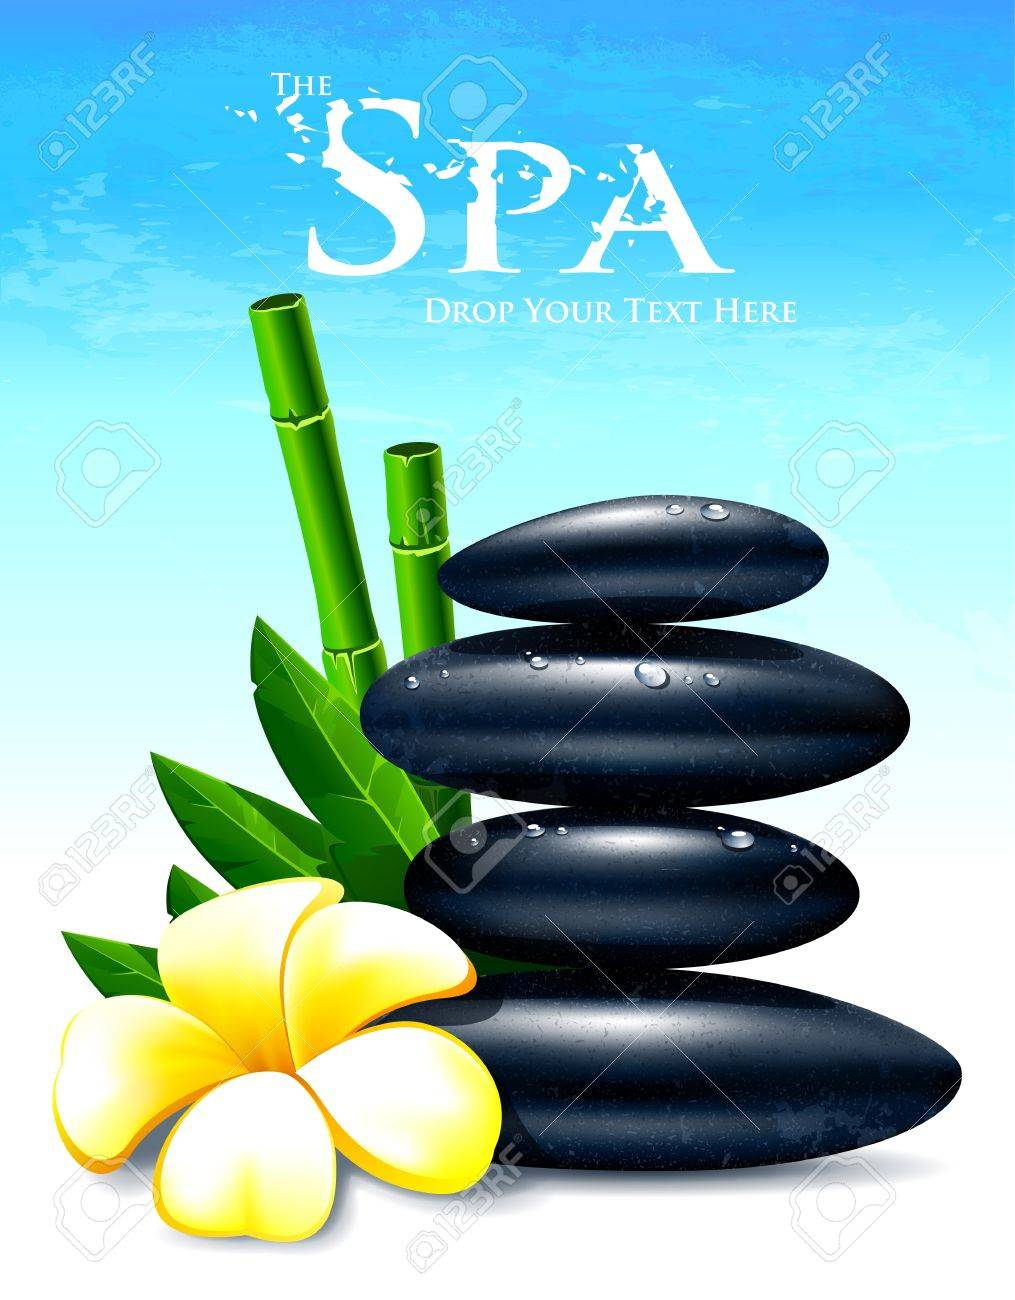 Spa Vector Illustration With Zen Stones Flower And Leafs Royalty Free Cliparts Vectors And Stock Illustration Image 14470117